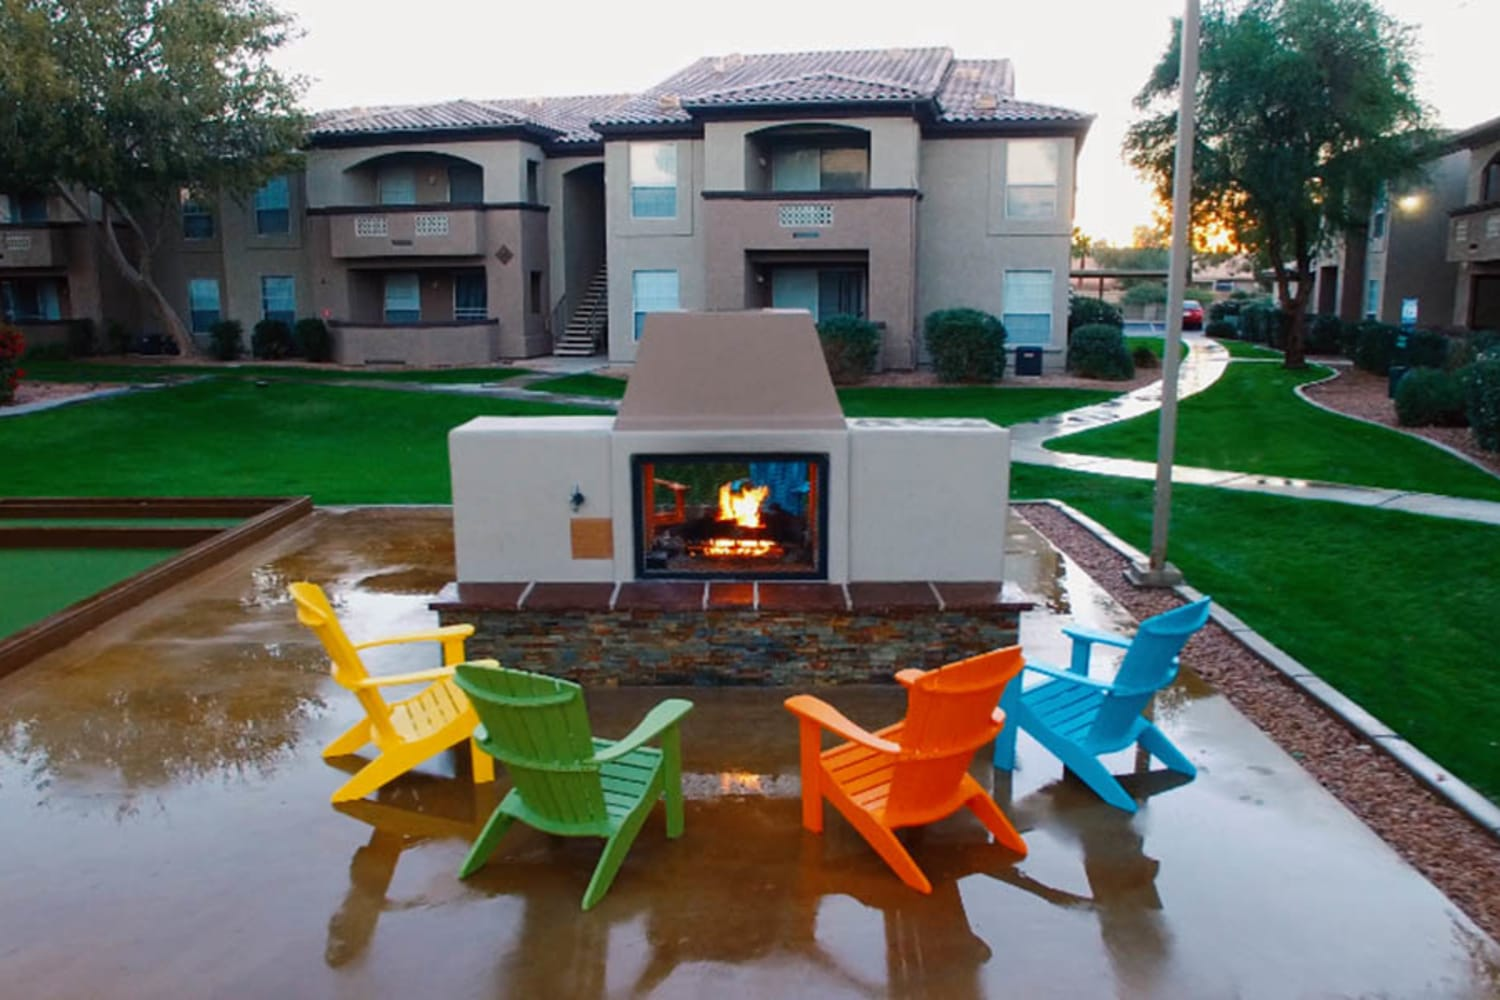 Outdoor fireplace and seating at Ocotillo Bay Apartments in Chandler, Arizona